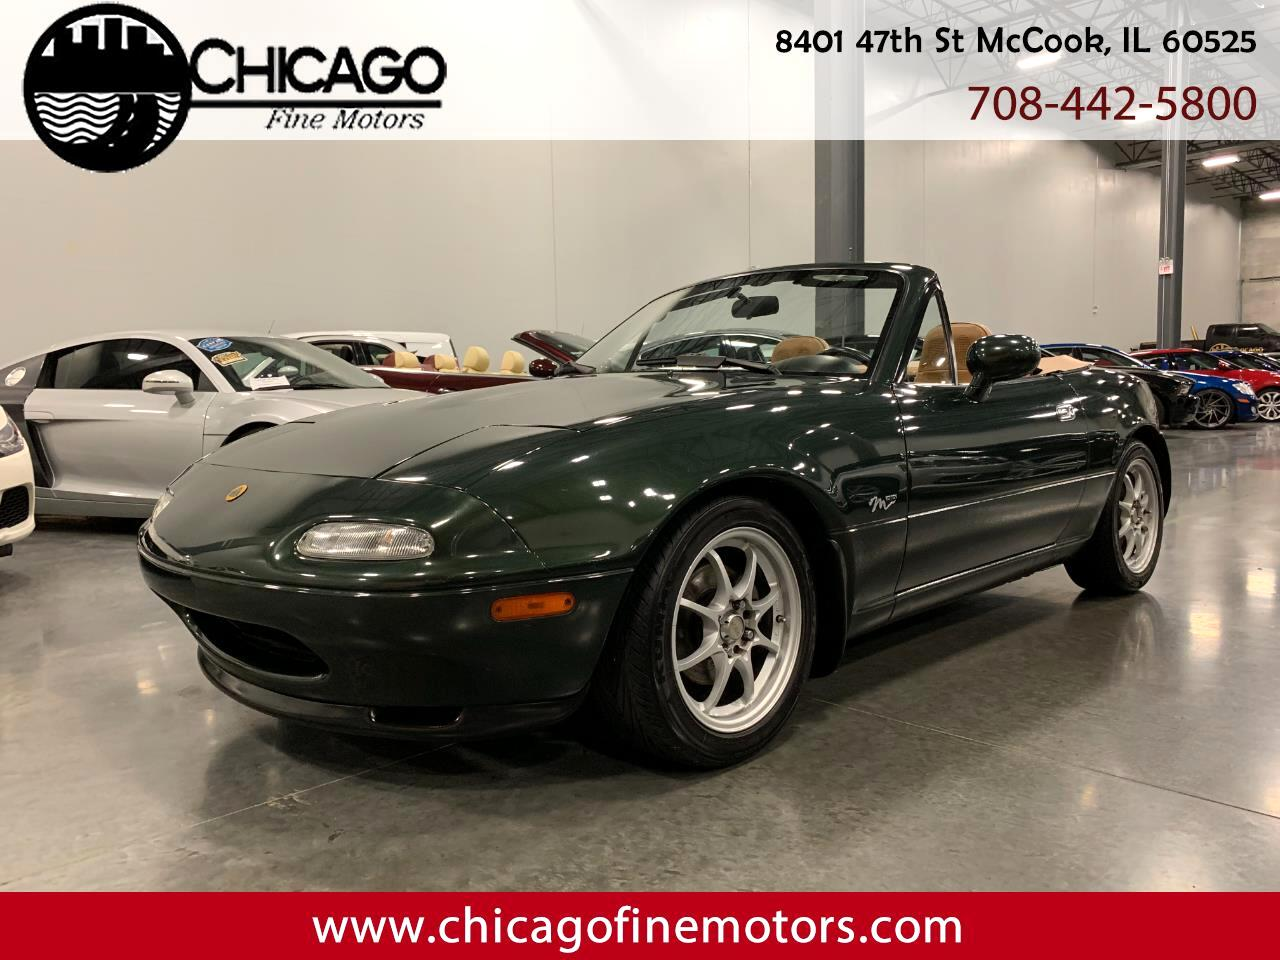 Mazda MX-5 Miata M Edition 1997